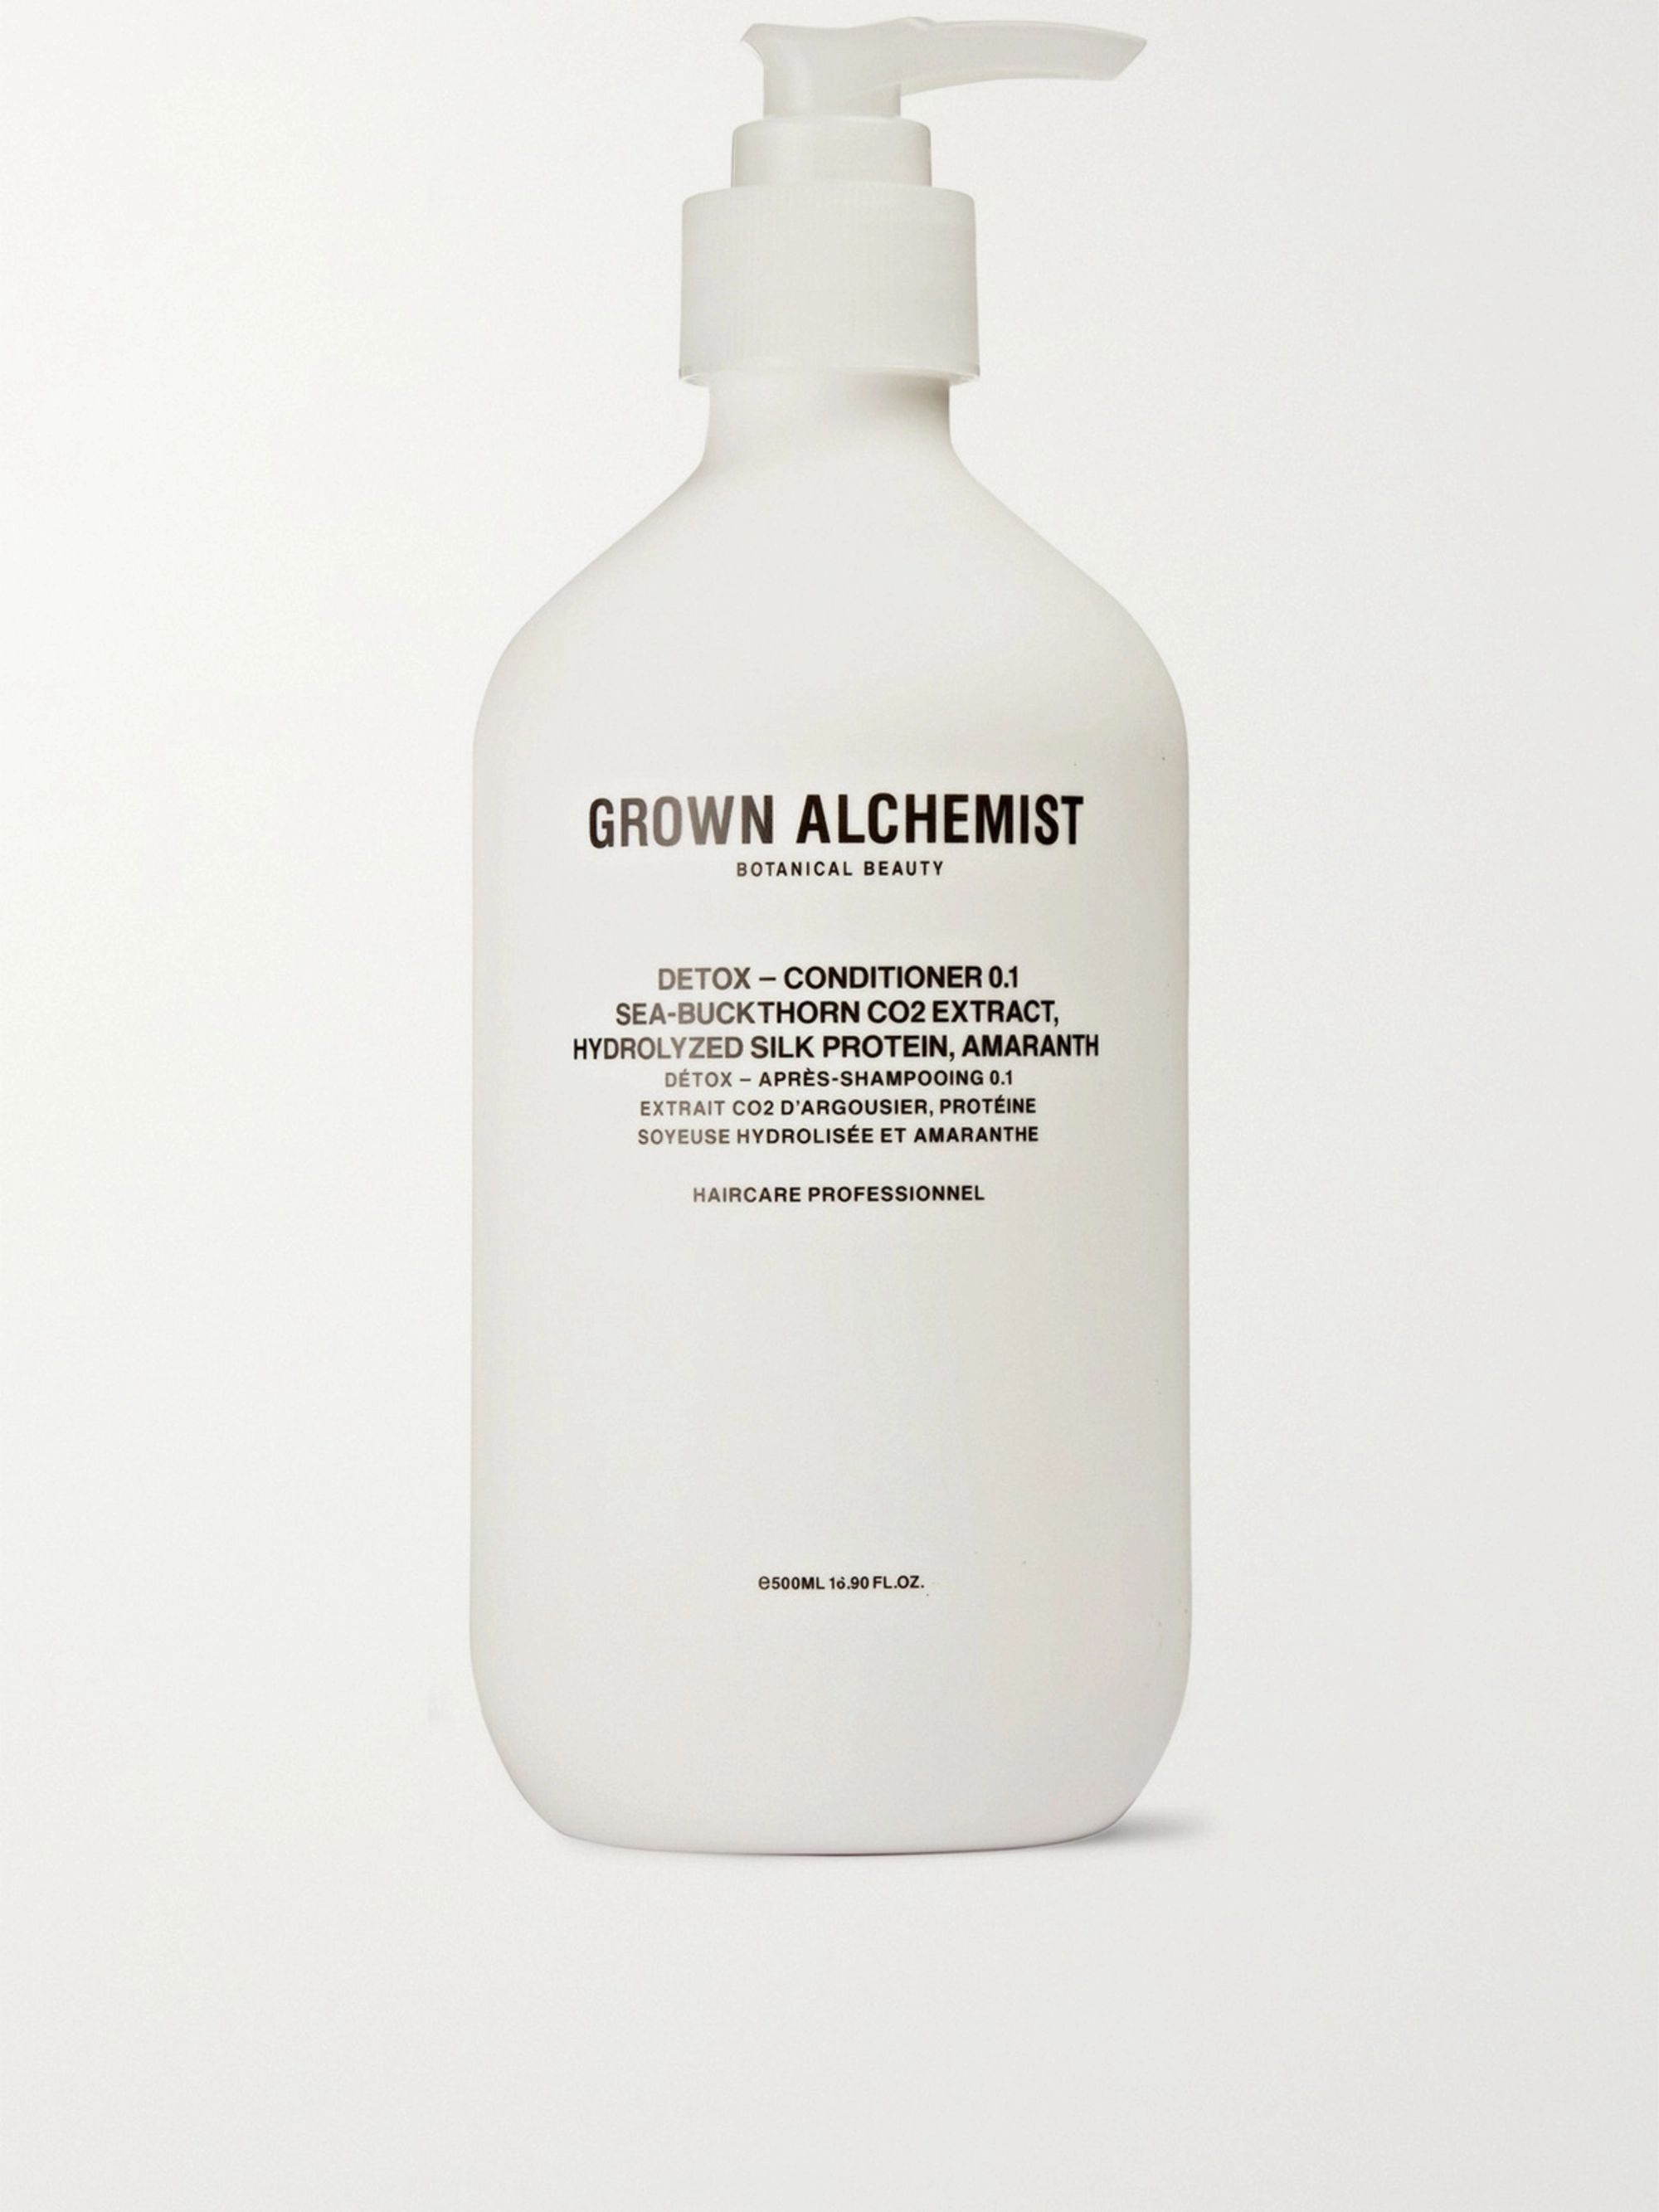 Grown Alchemist Detox Conditioner 0.1 - Sea-Buckthorn CO2 Extract, Hydrolysed Silk Protein & Amaranth, 500ml